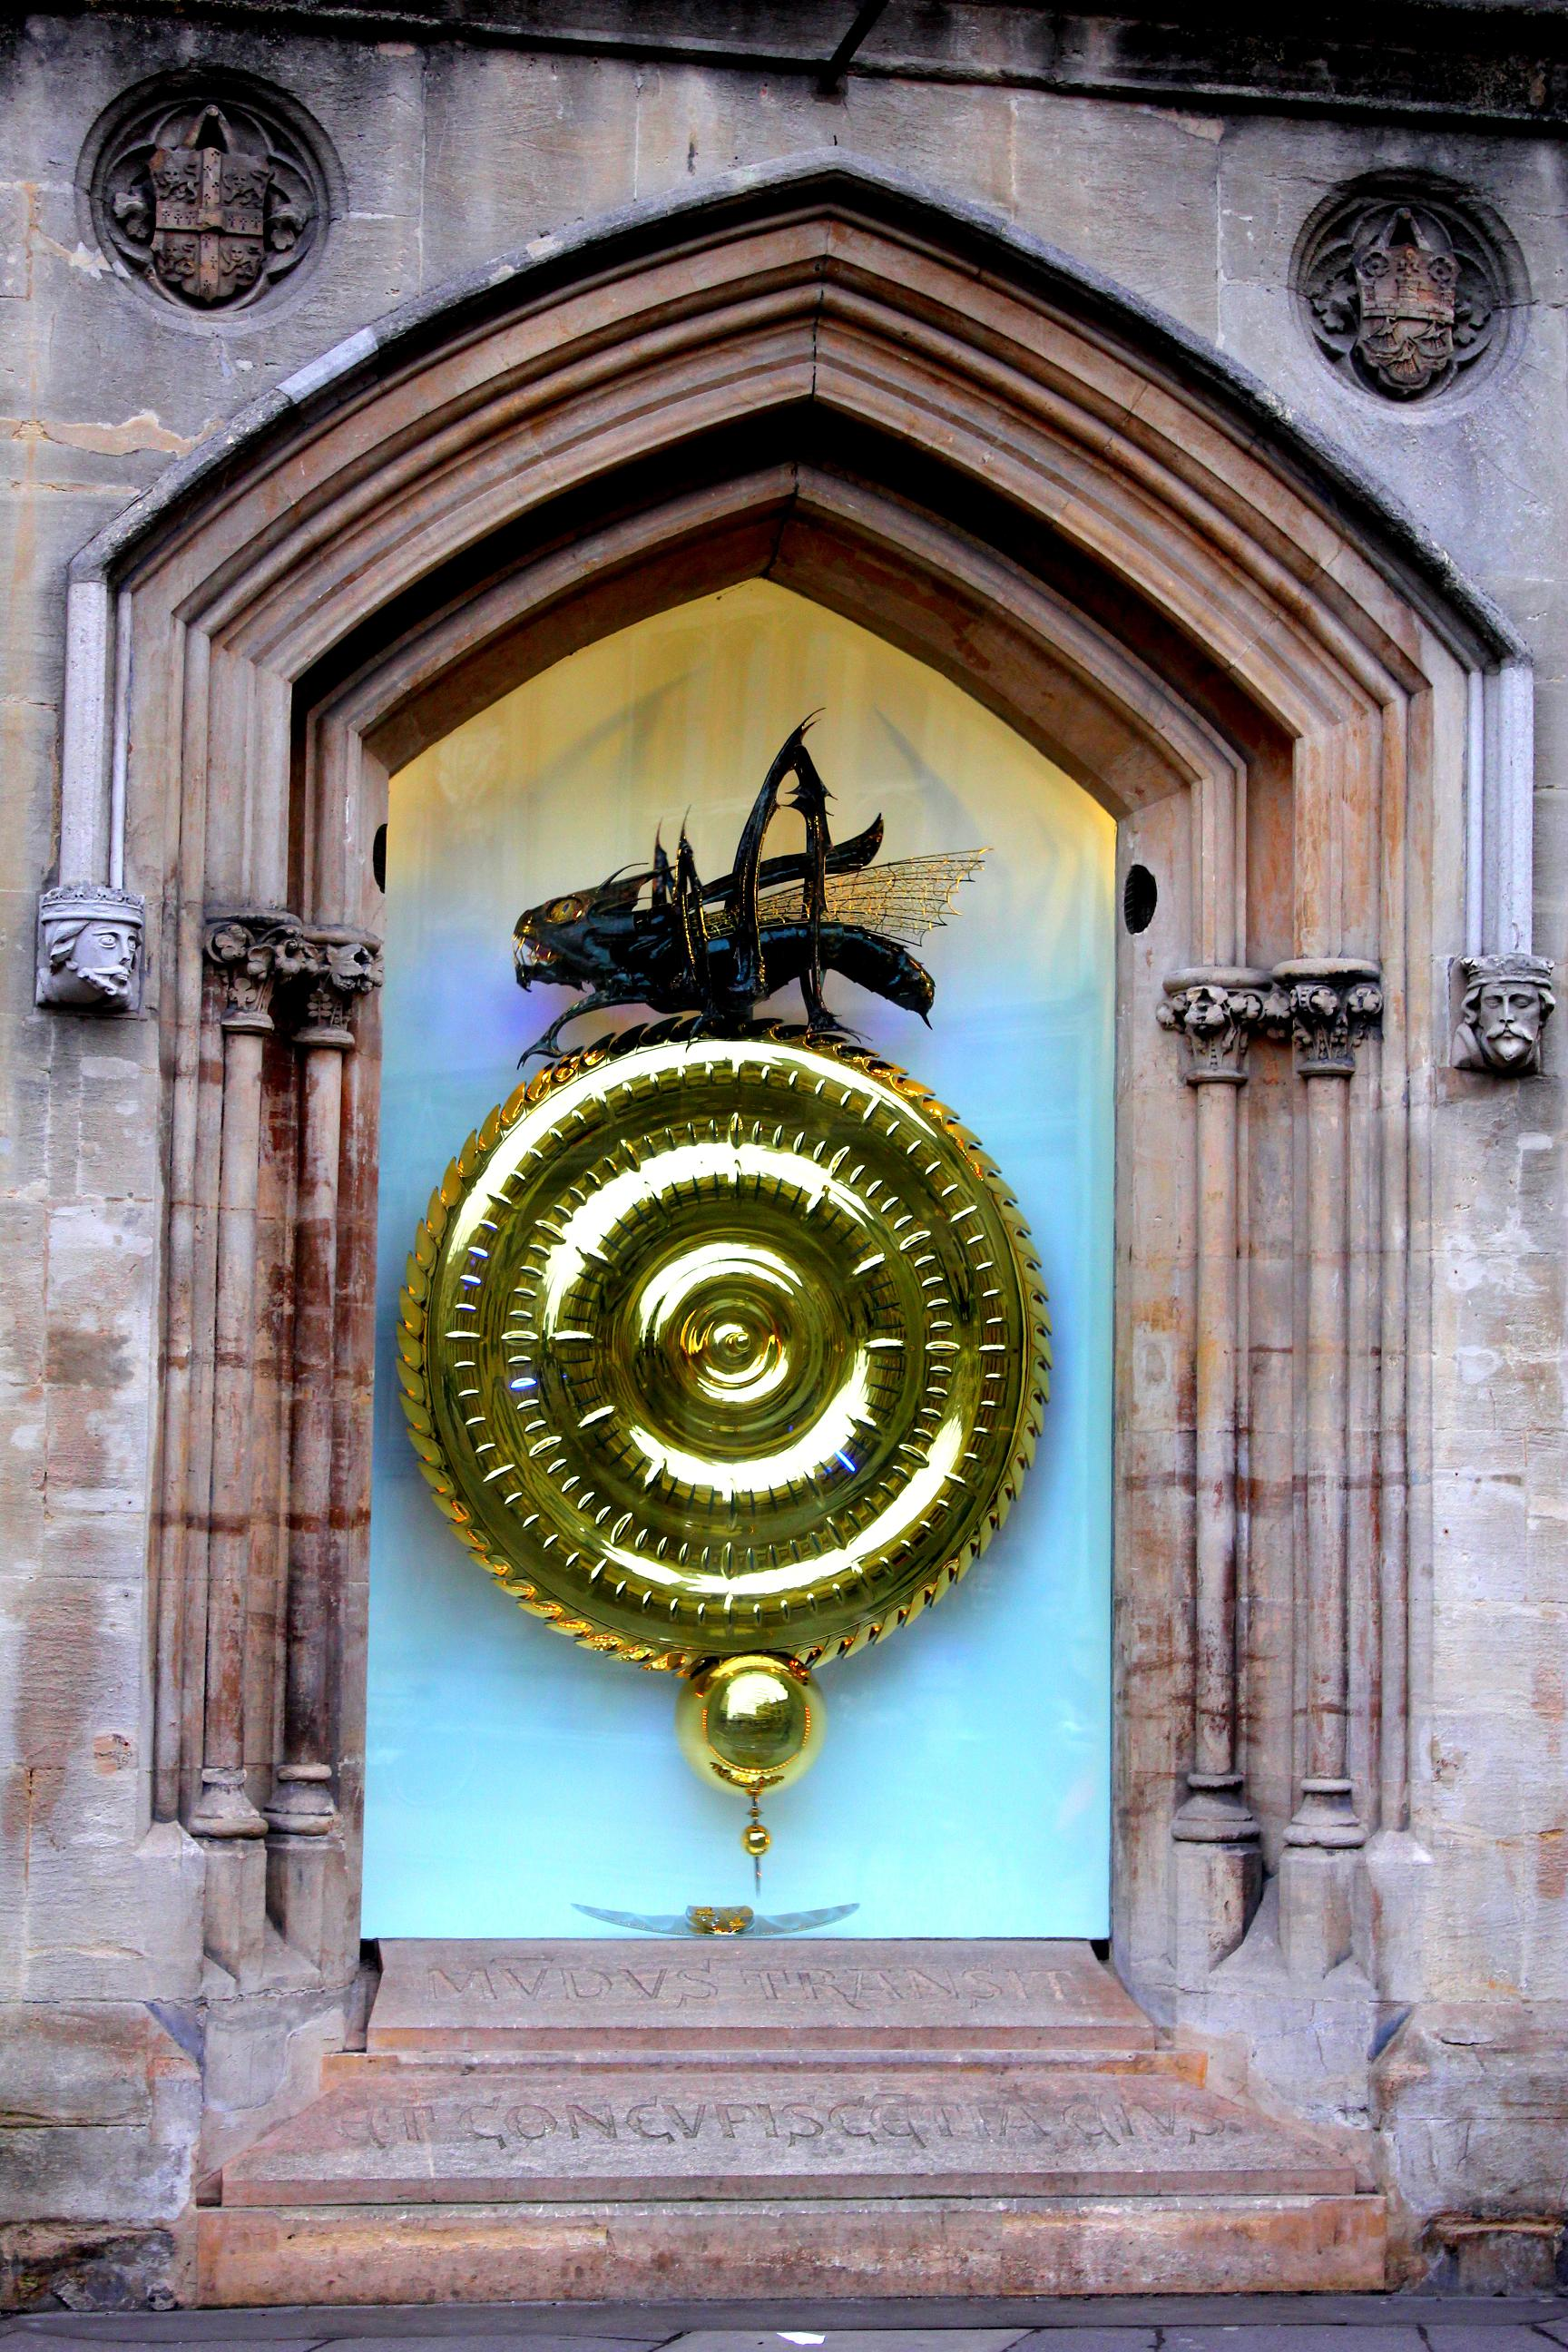 Corpus Rub The 'time-eater' Of Cambridge – Detours By Deepali